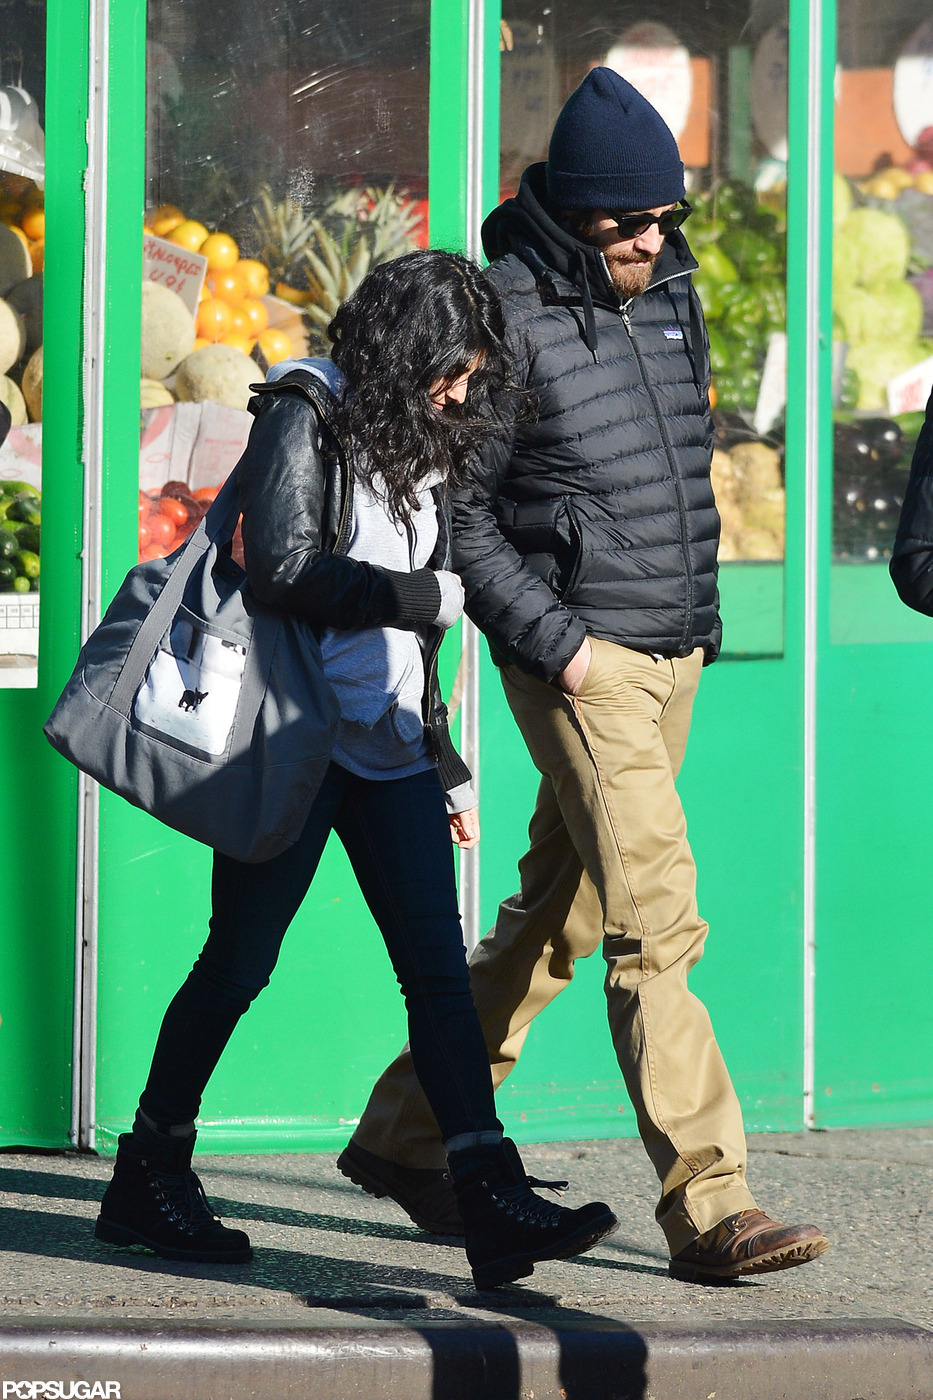 Jake Gyllenhaal had an afternoon out with a female friend in NYC.